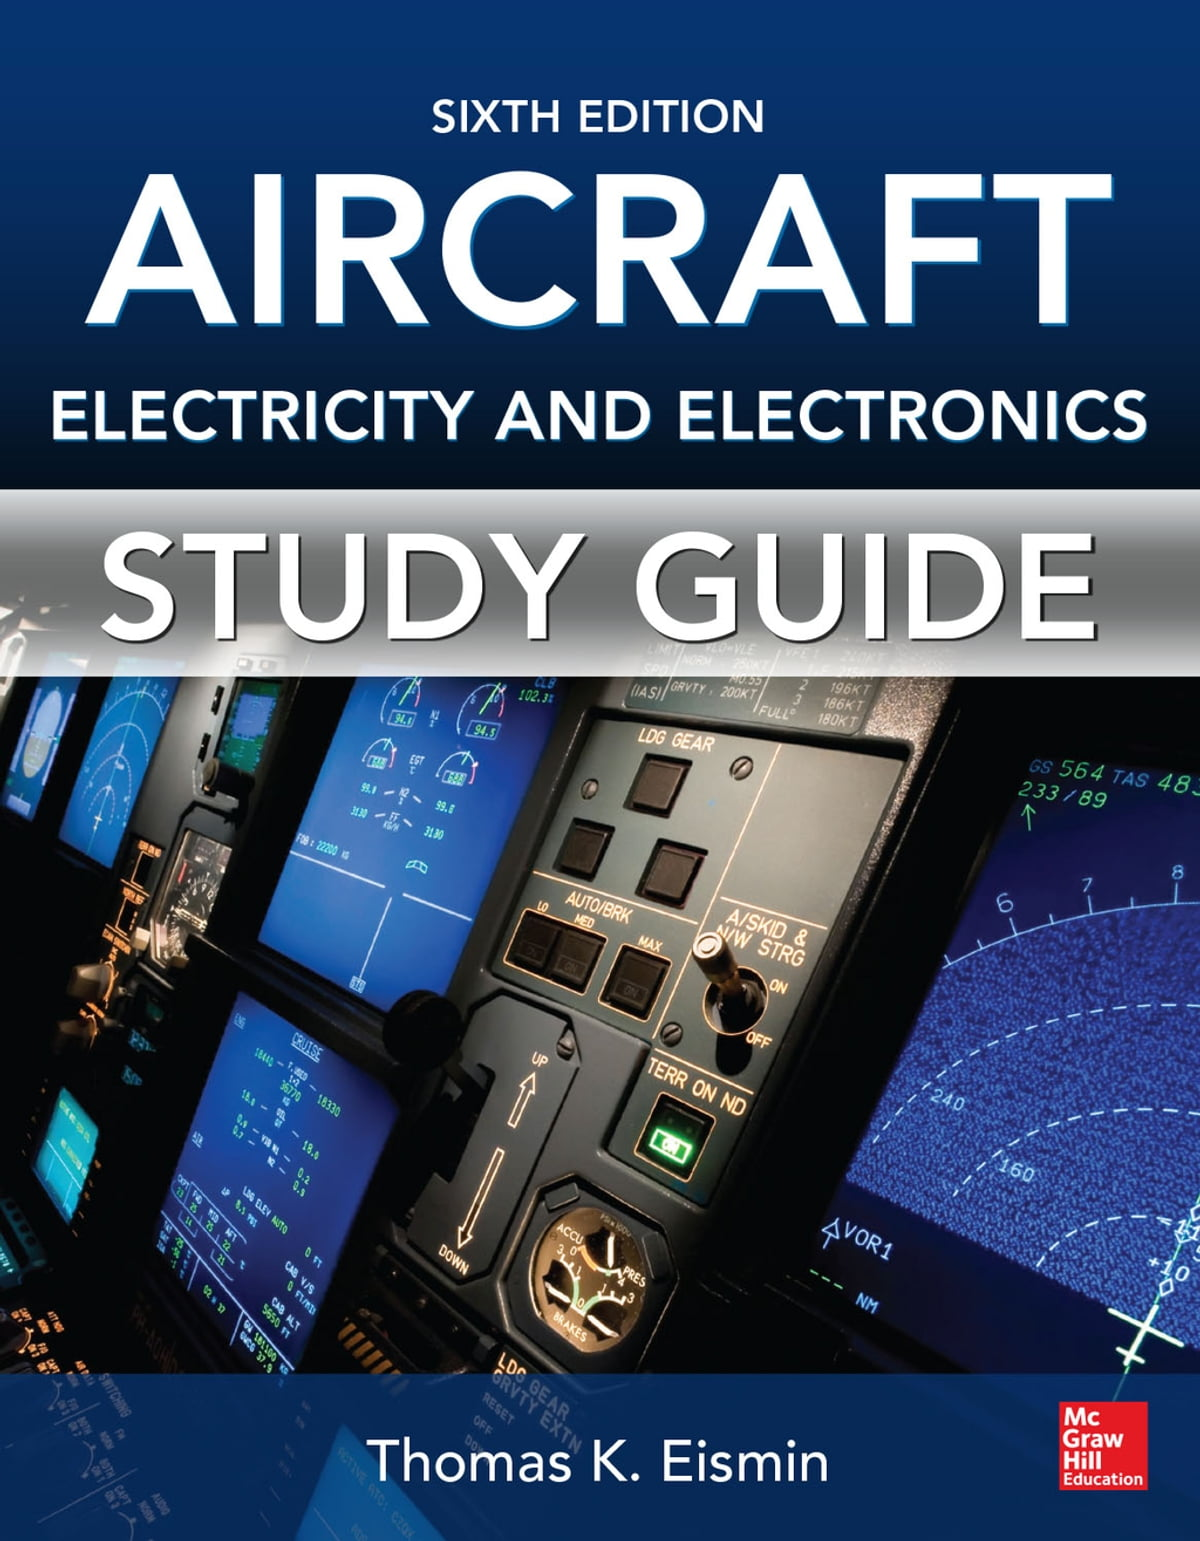 Study Guide for Aircraft Electricity and Electronics, Sixth Edition eBook  by Thomas K Eismin - 9780071825023 | Rakuten Kobo